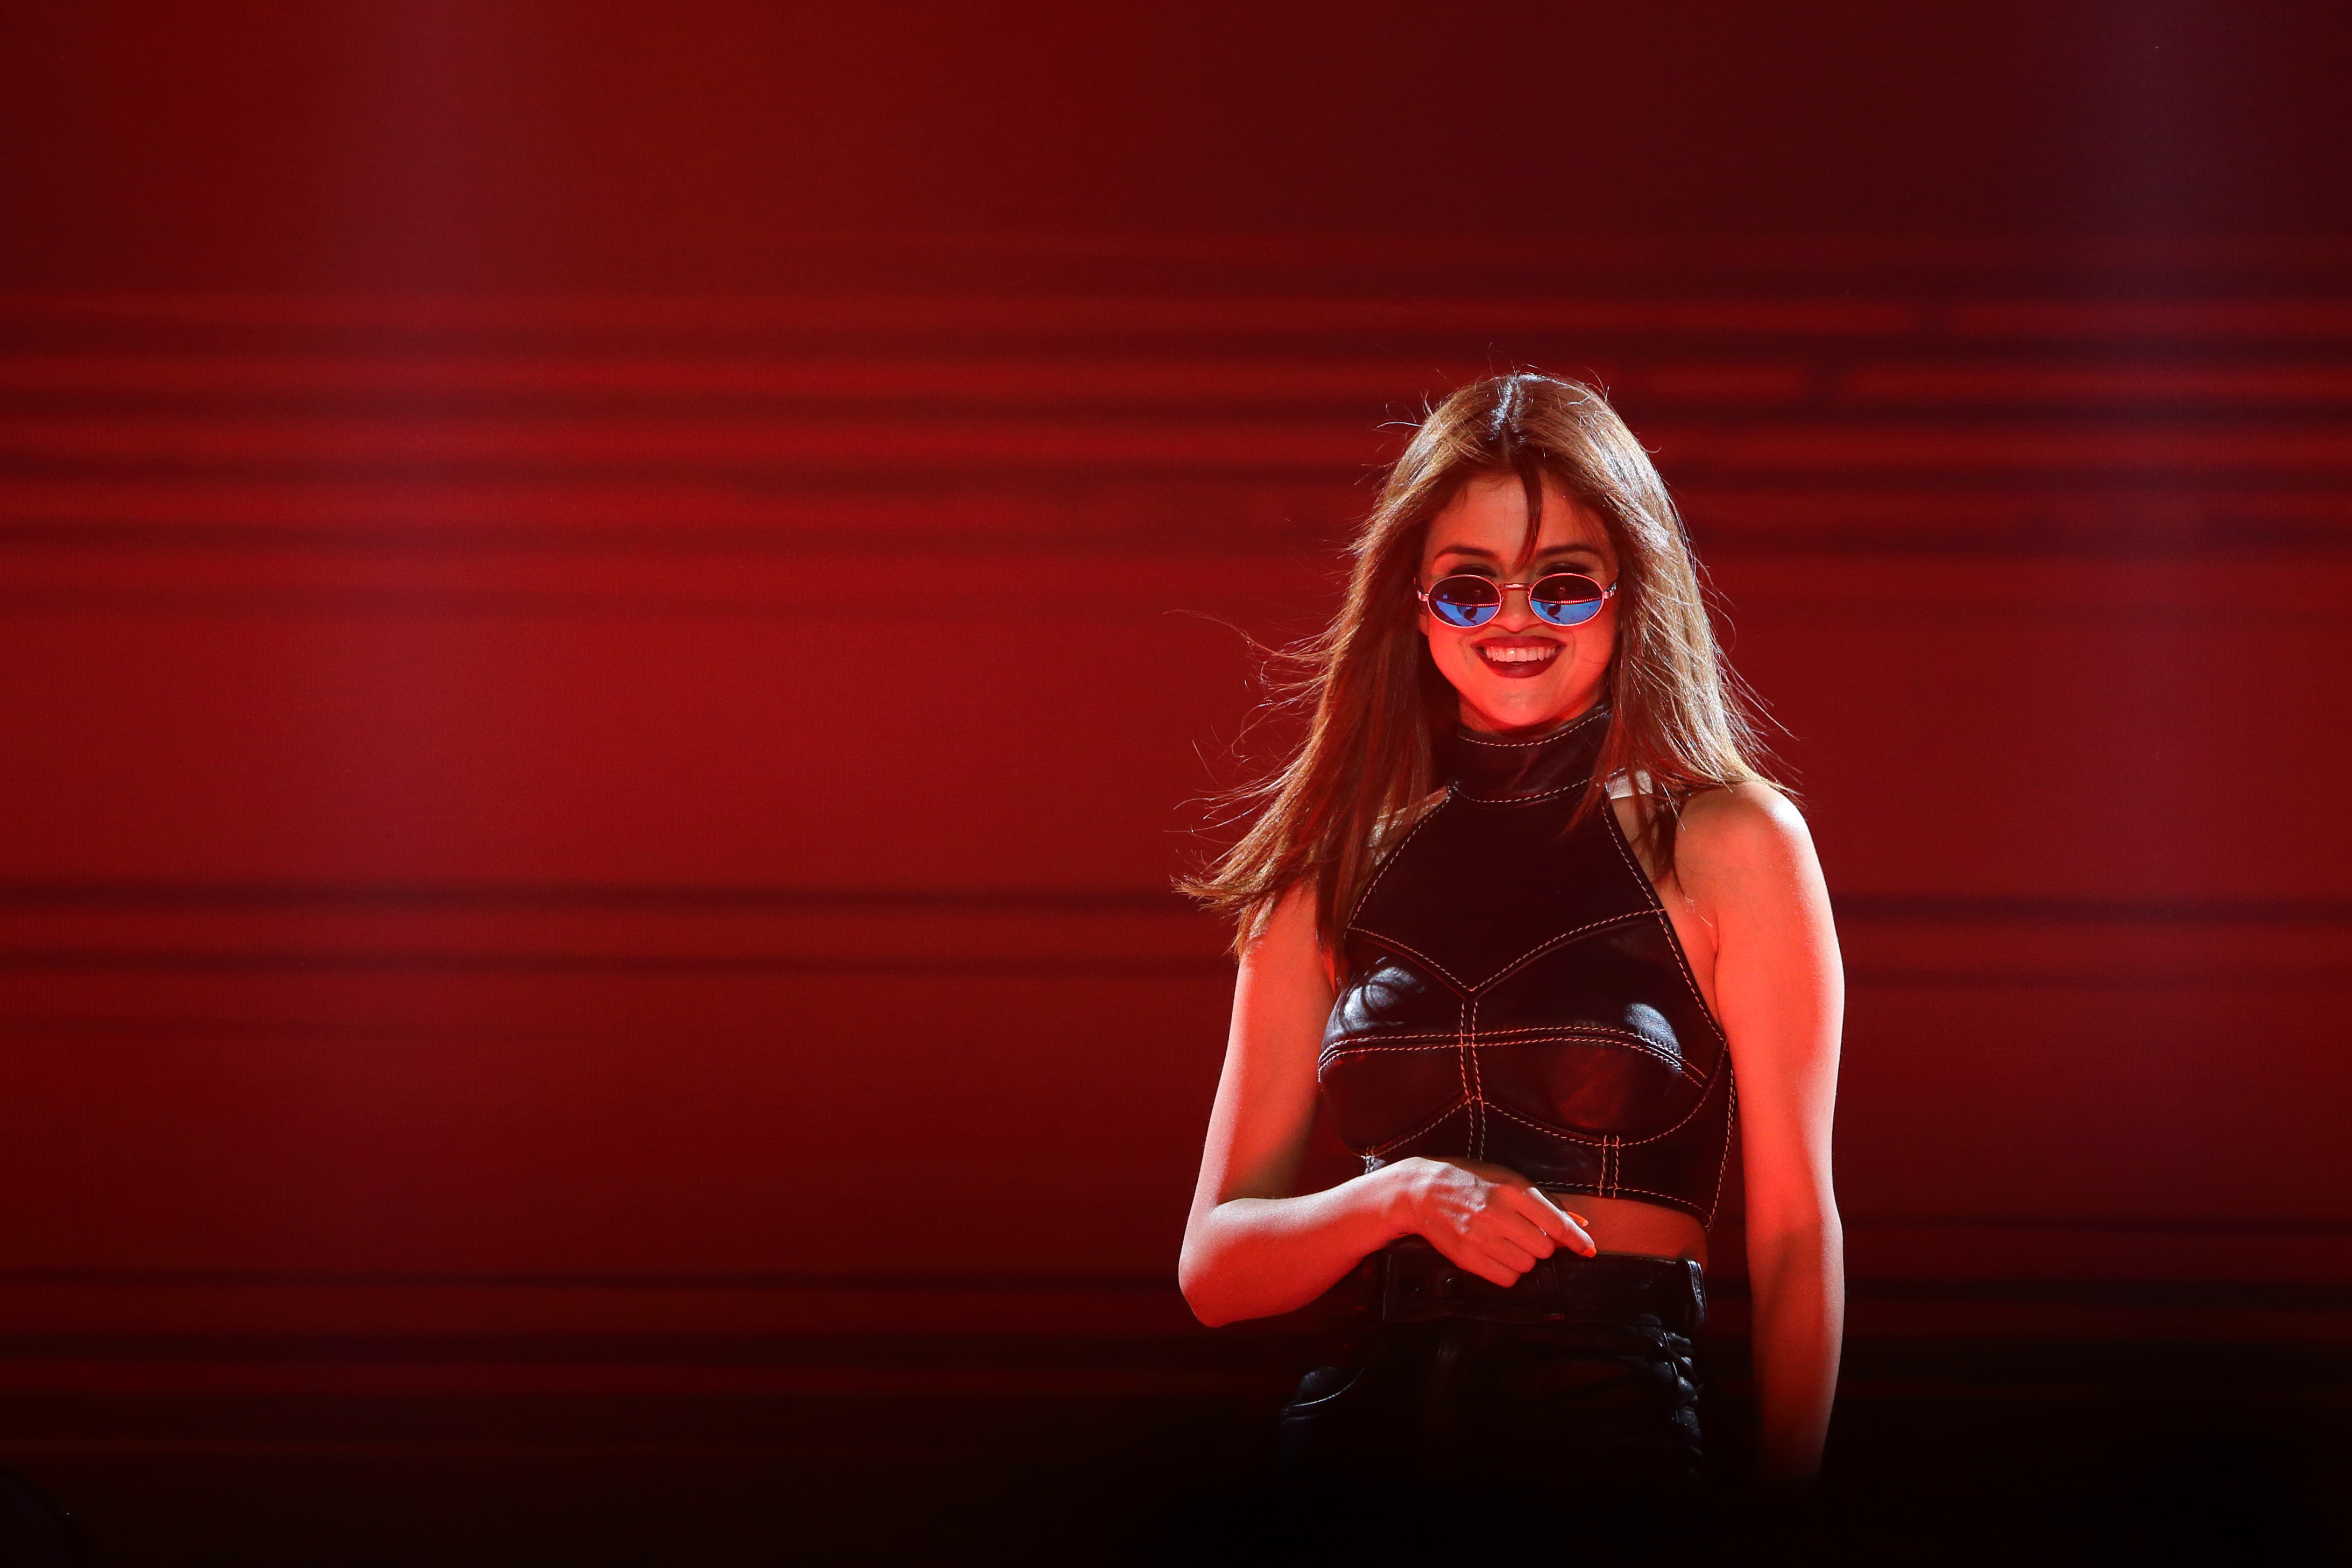 Selena gomez 4k 2017 hd music 4k wallpapers images backgrounds photos and pictures - Selena gomez 4k ultra hd wallpapers ...